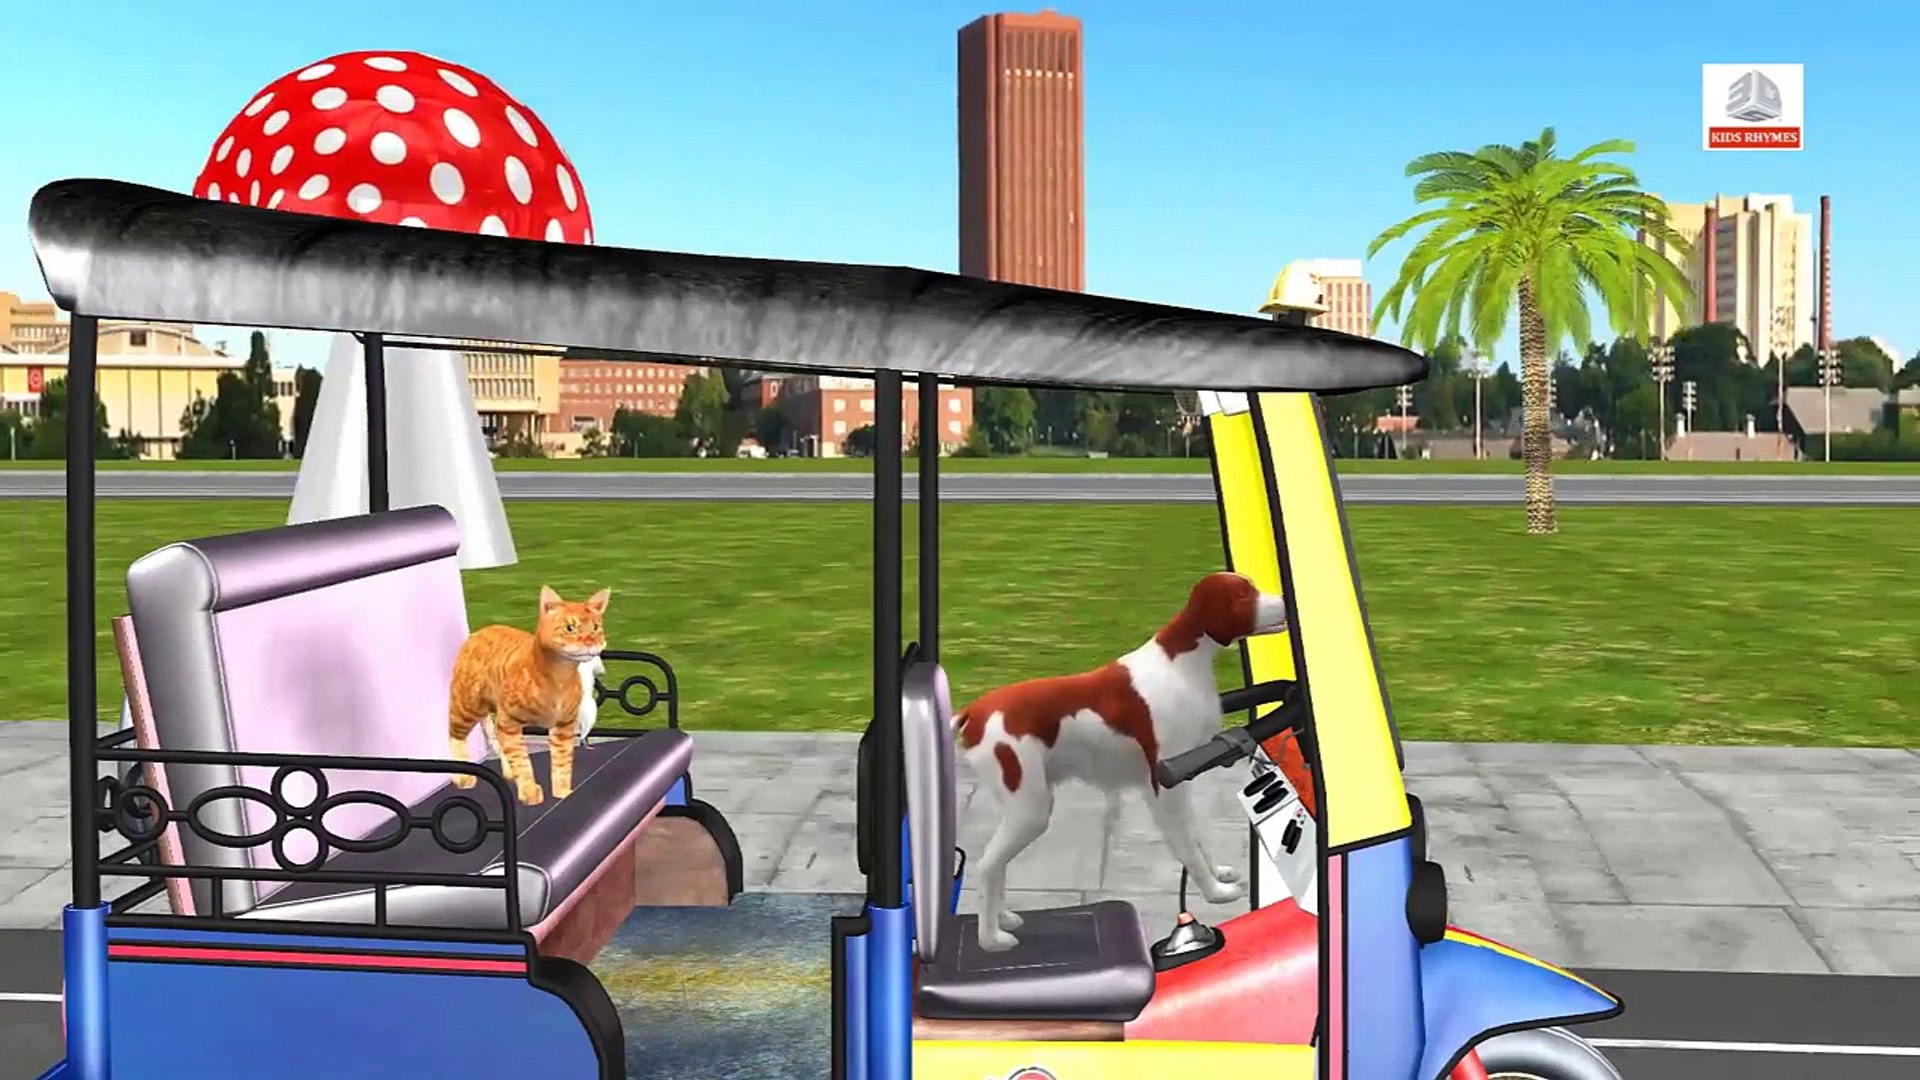 Learn Street Vehicles | Learn Animals | Animals Accident | Animals prank | Fun Learning Videos